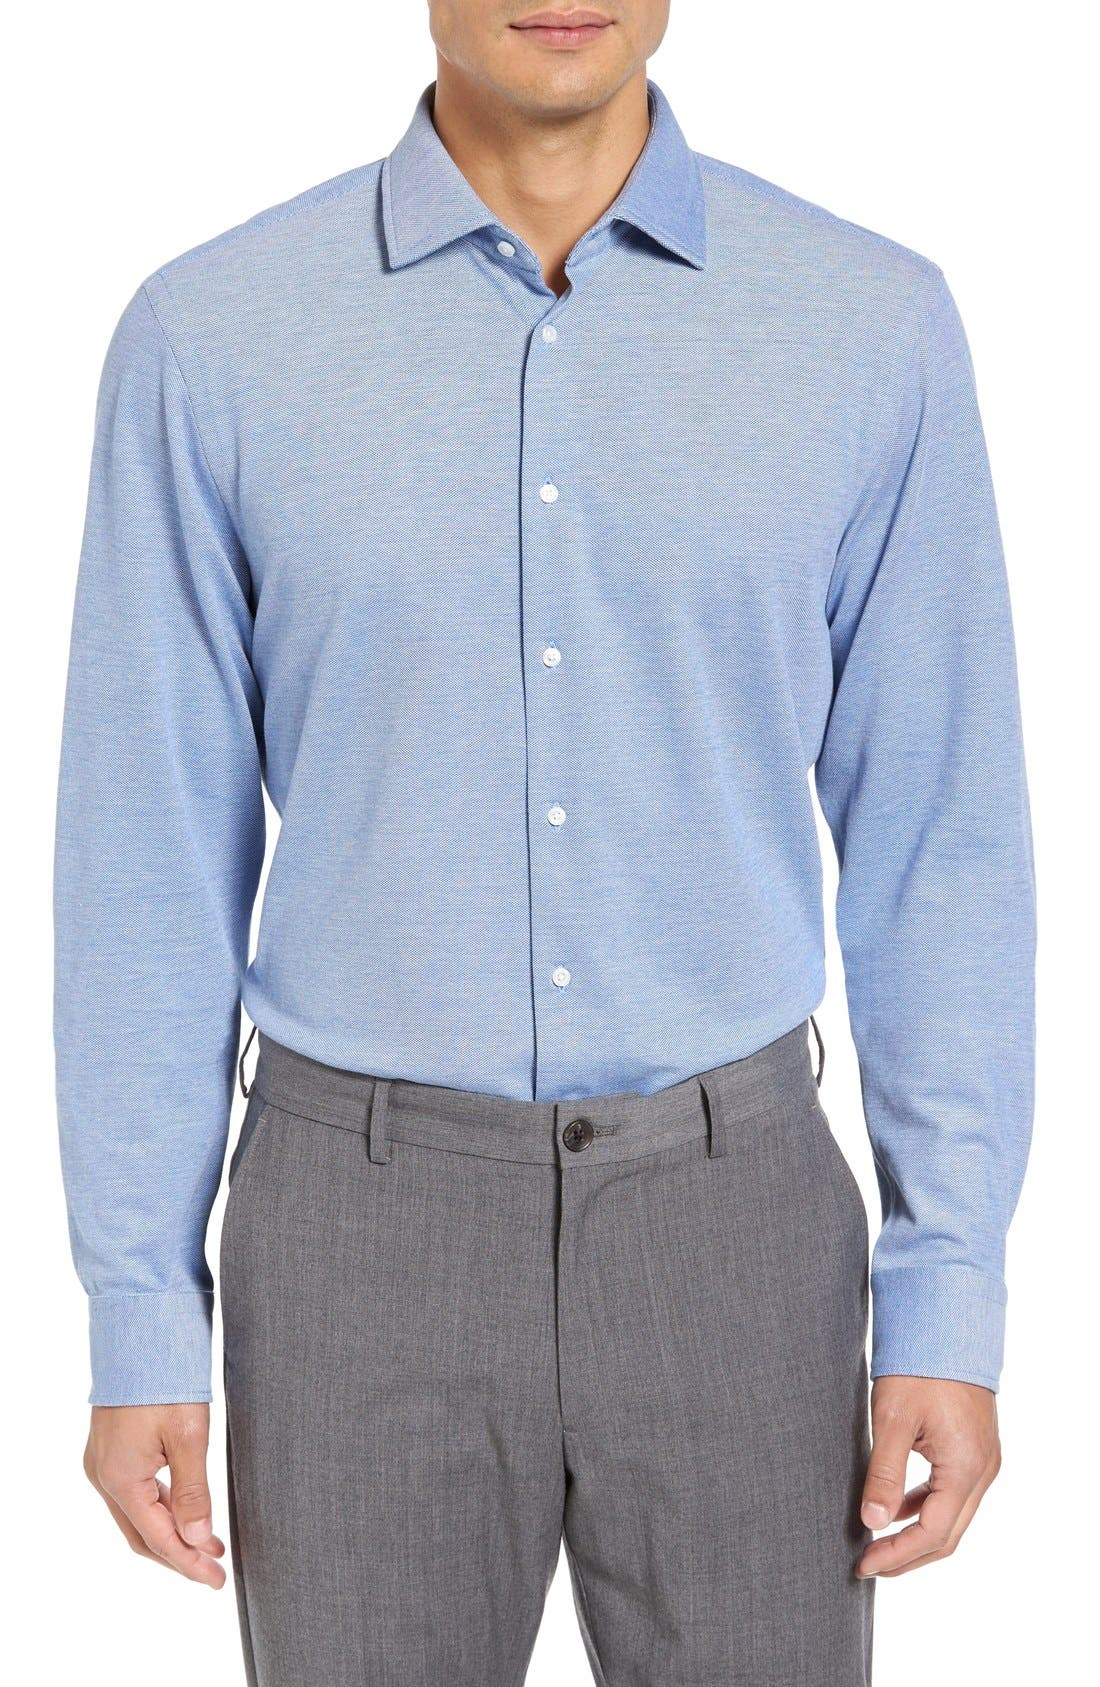 Trim Fit Knit Dress Shirt,                             Main thumbnail 1, color,                             Blue Provence